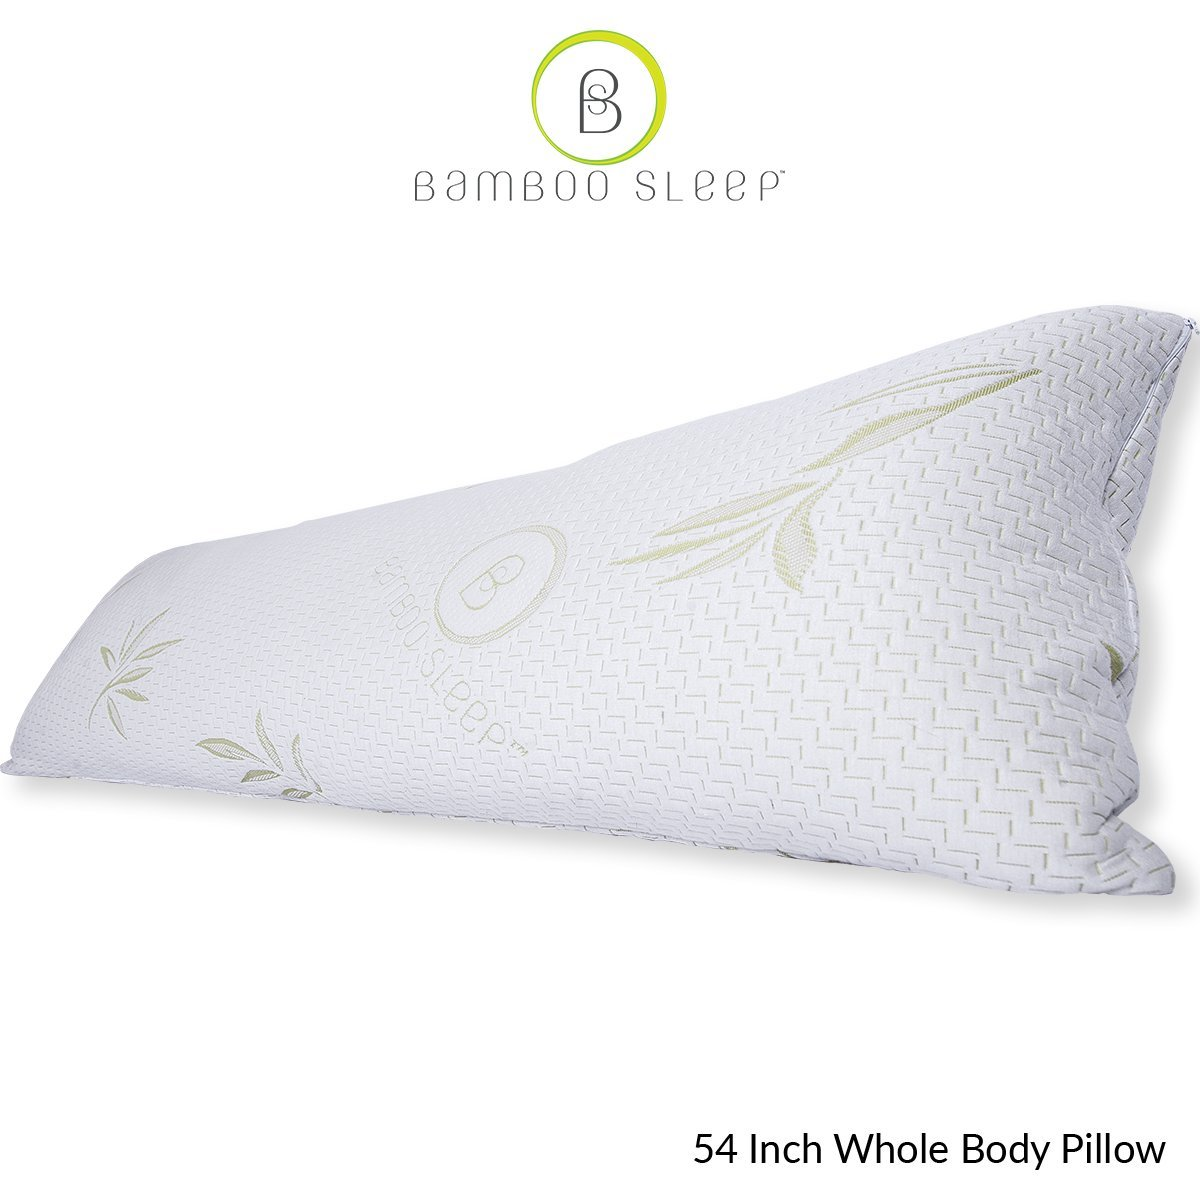 Bamboo Sleep Premium Bamboo Memory Foam Pillow Set. Ultra Cool Hypoallergenic Washable Bamboo Cover USA Designed (Body)